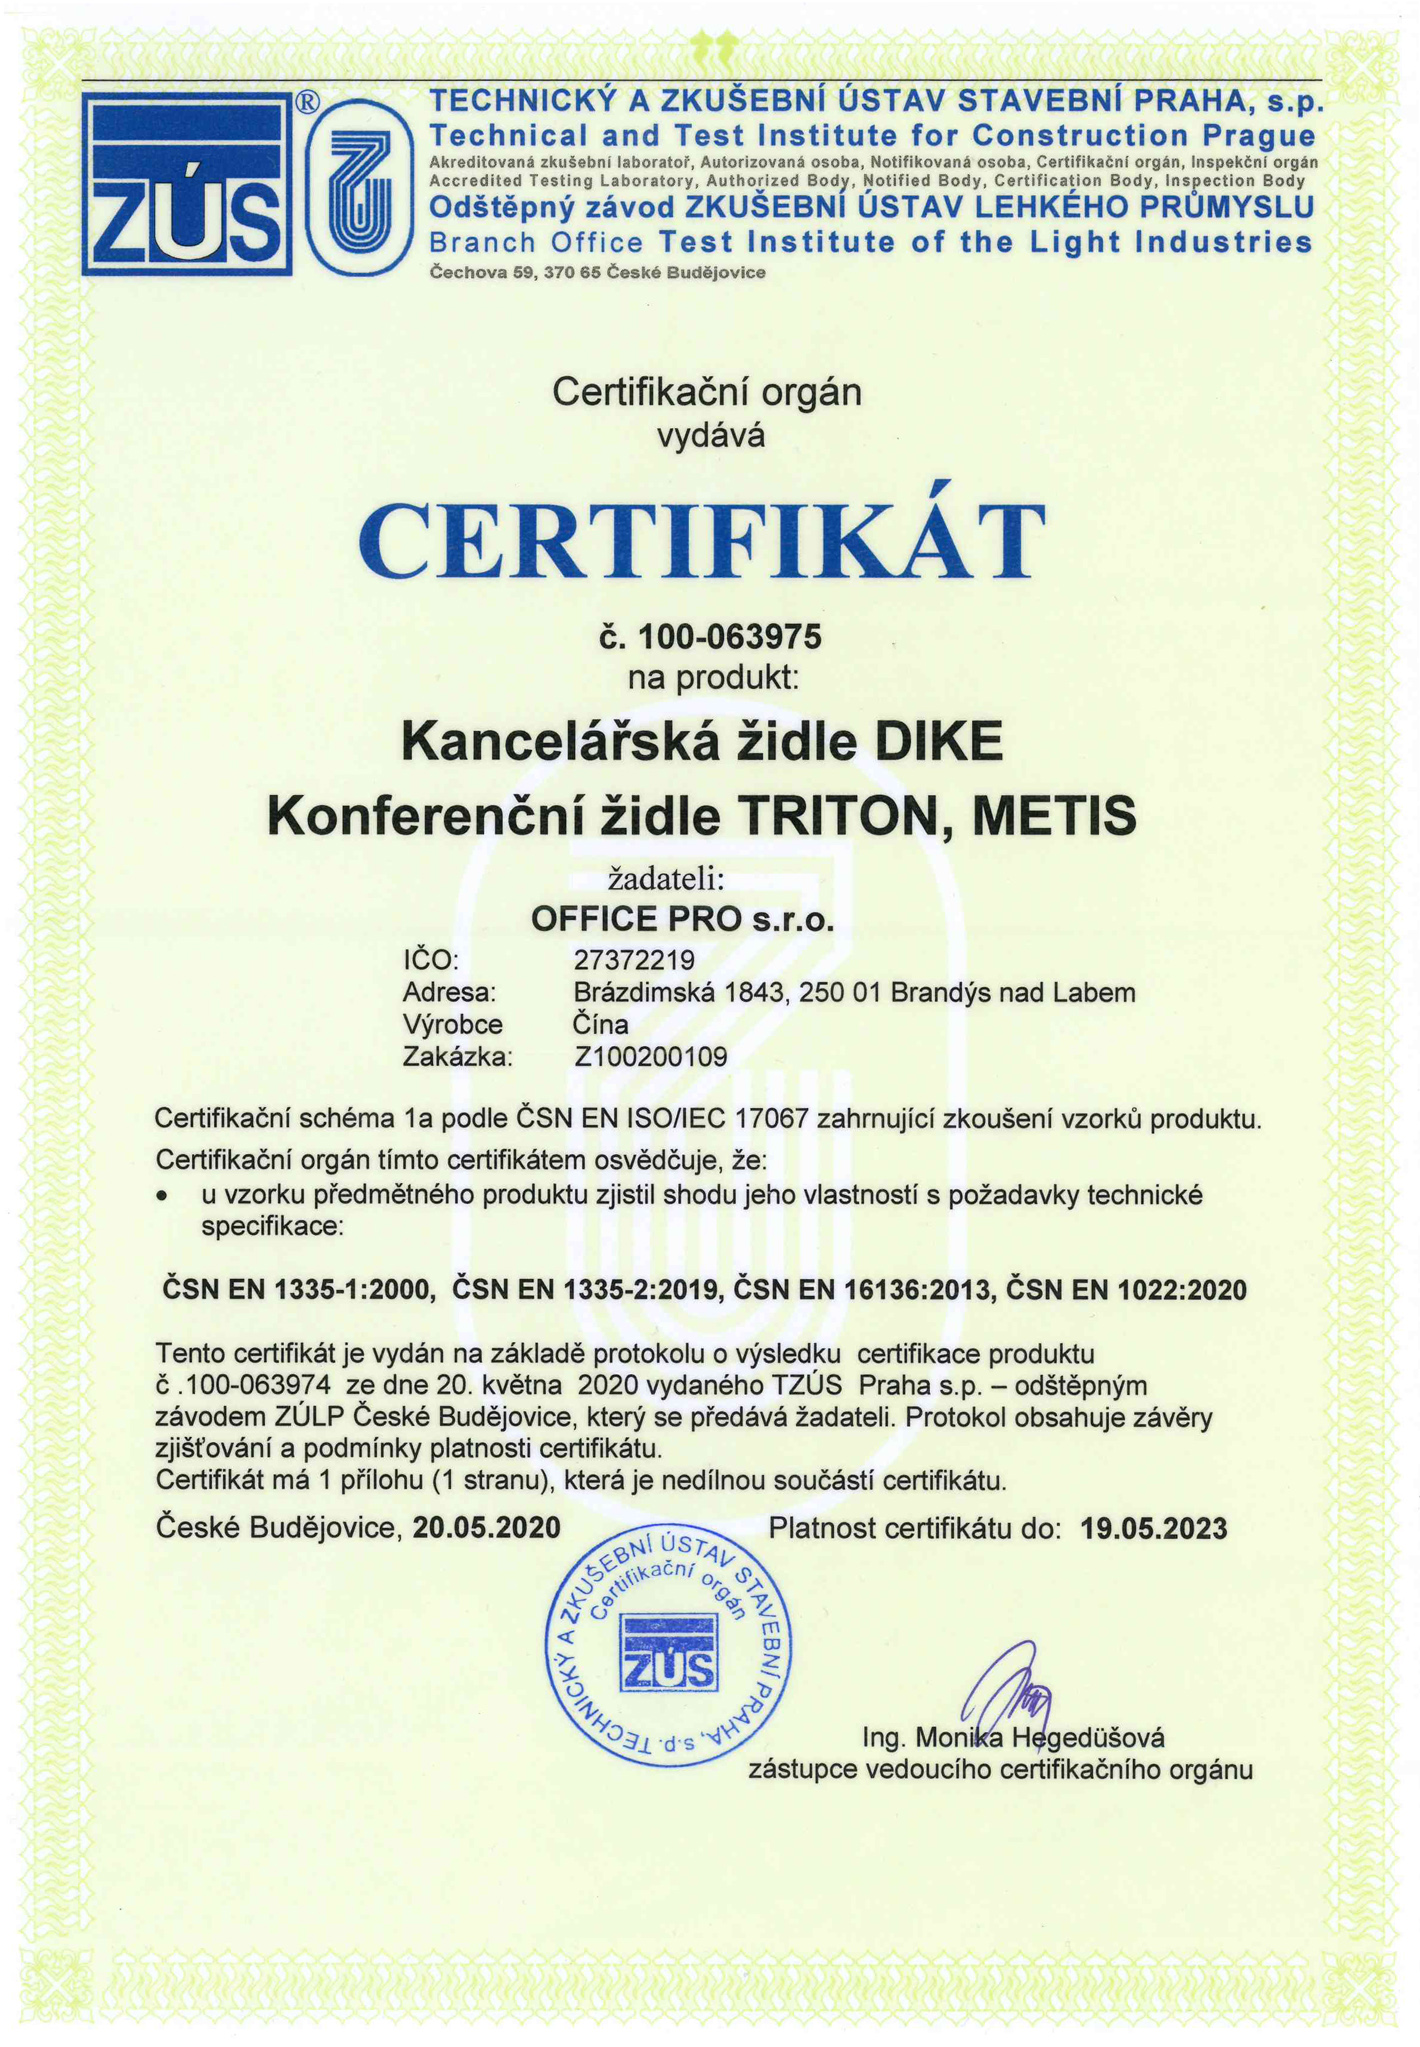 http://www.officepro.cz/data/files/certifikaty-2020-diketritonmetis.jpg